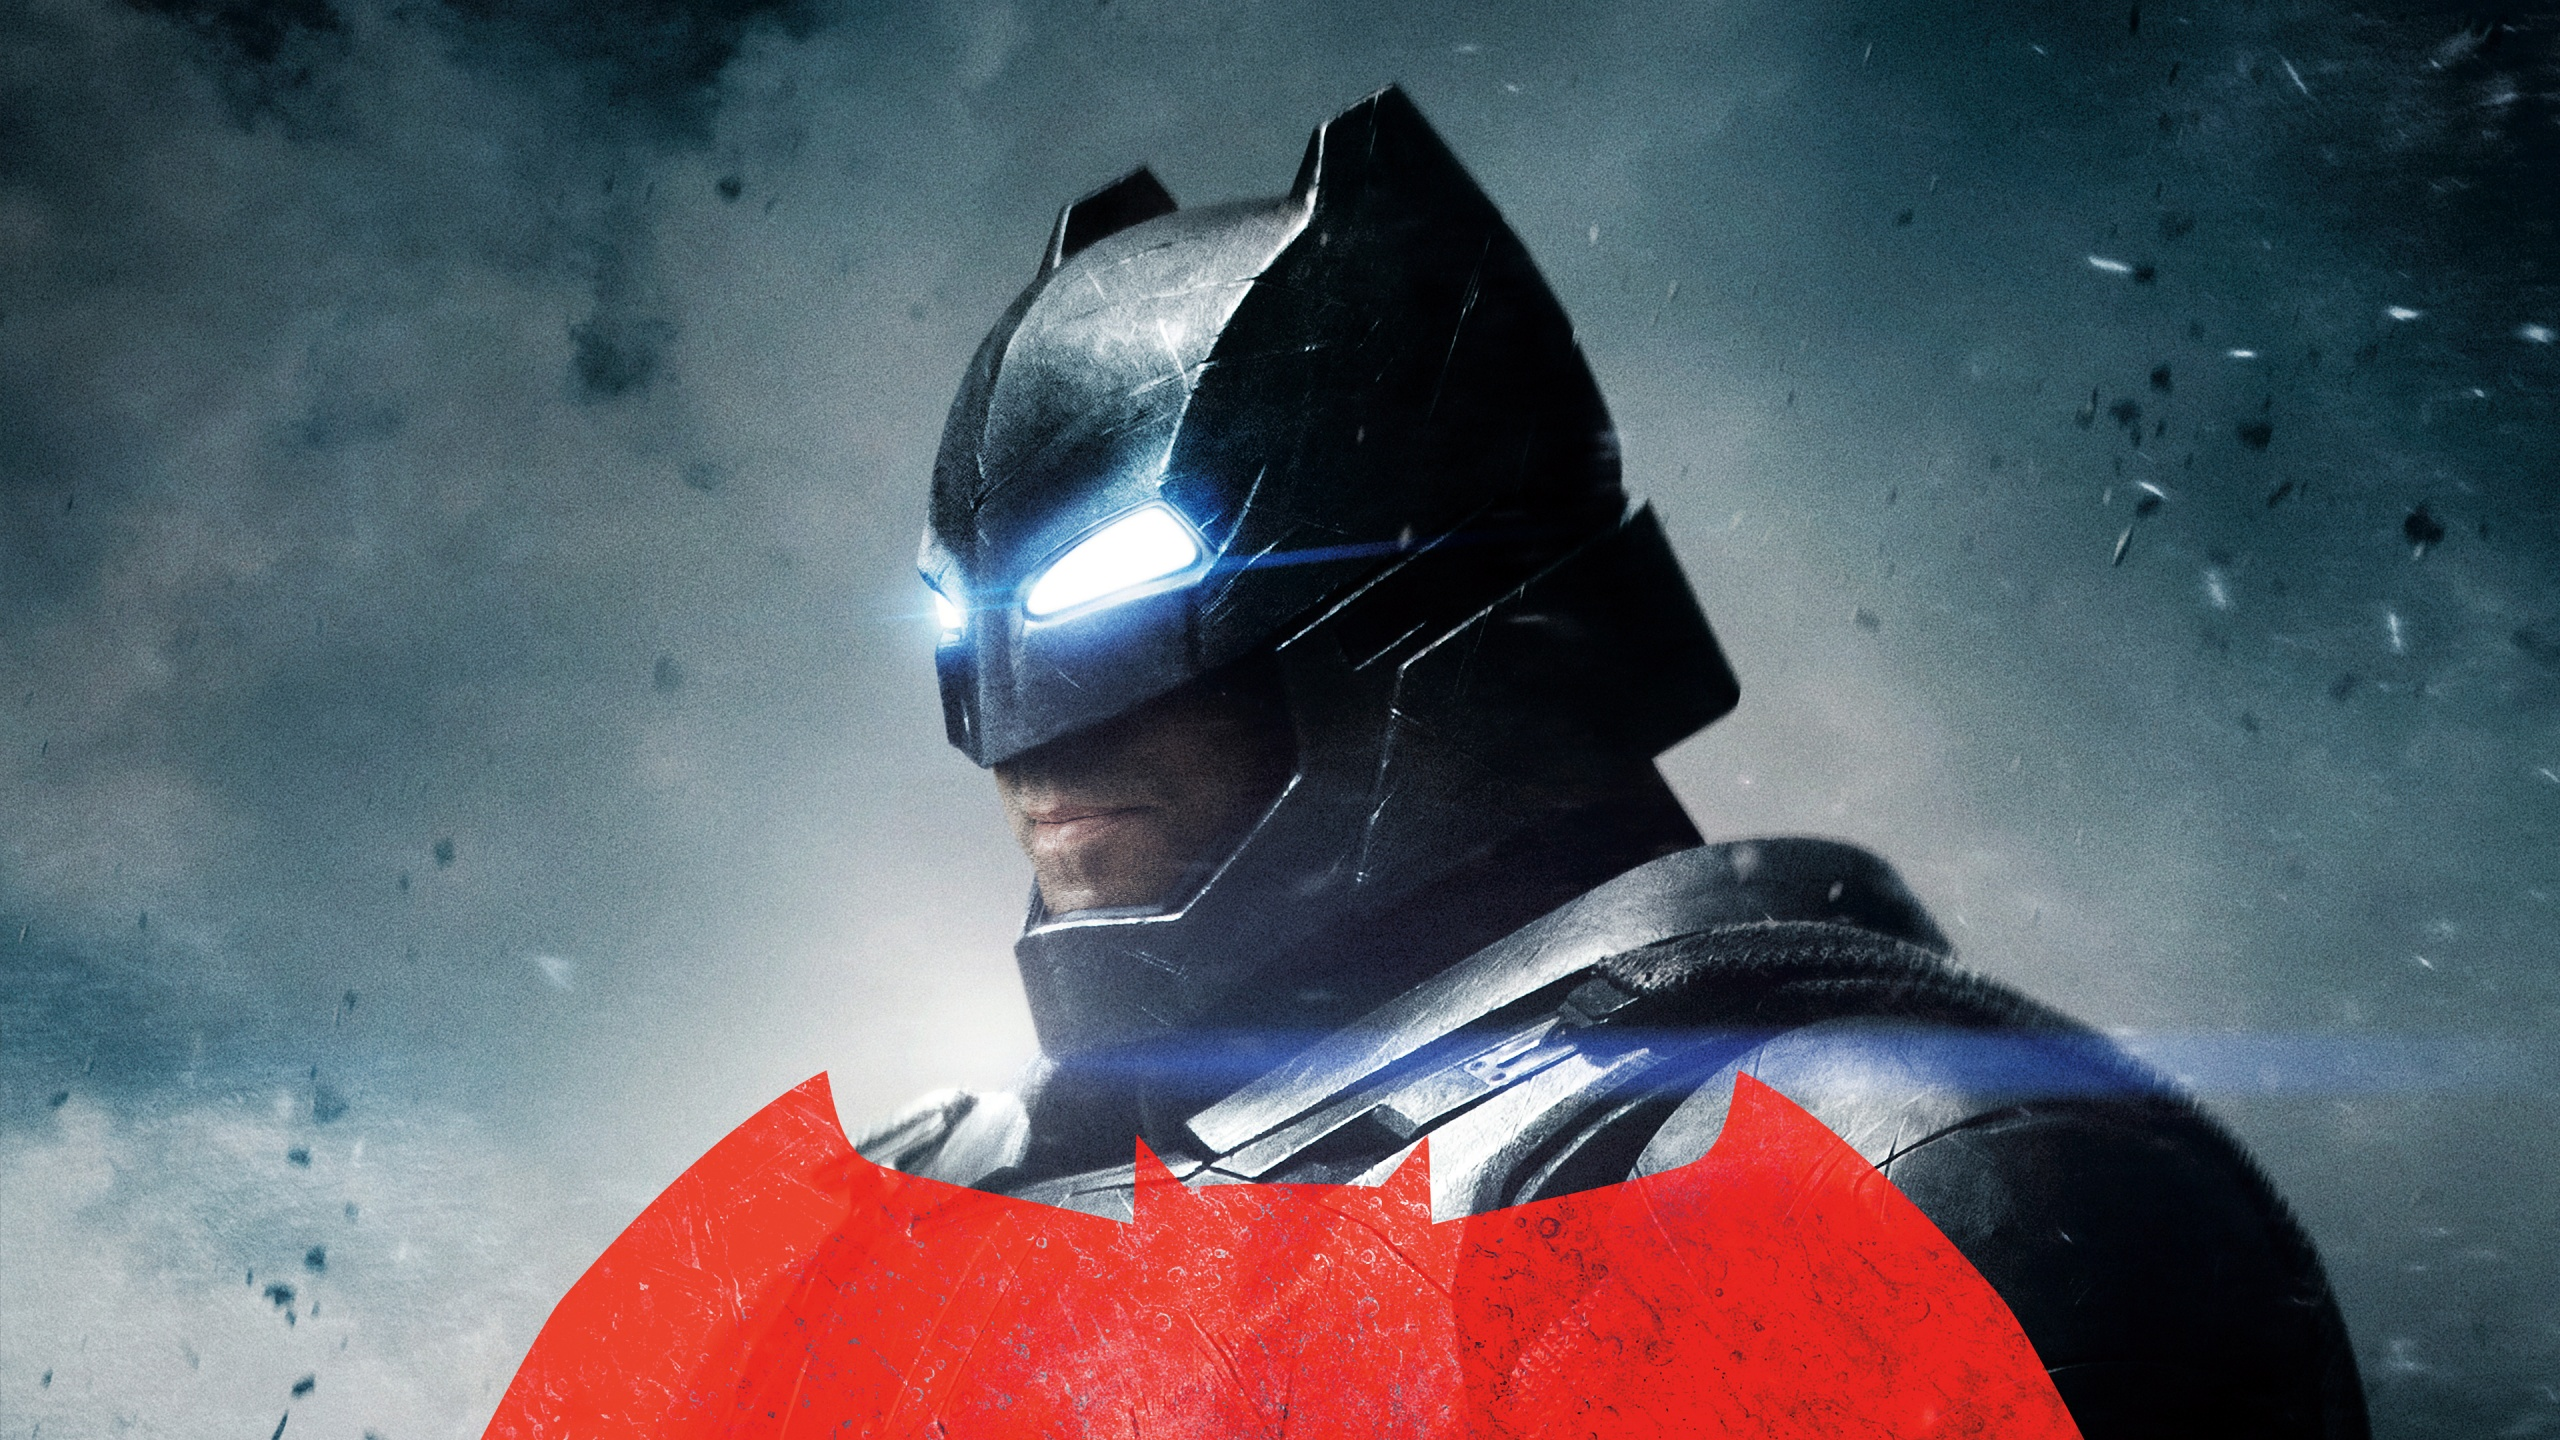 Batman V Superman Batman Wallpapers HD Wallpapers 2560x1440